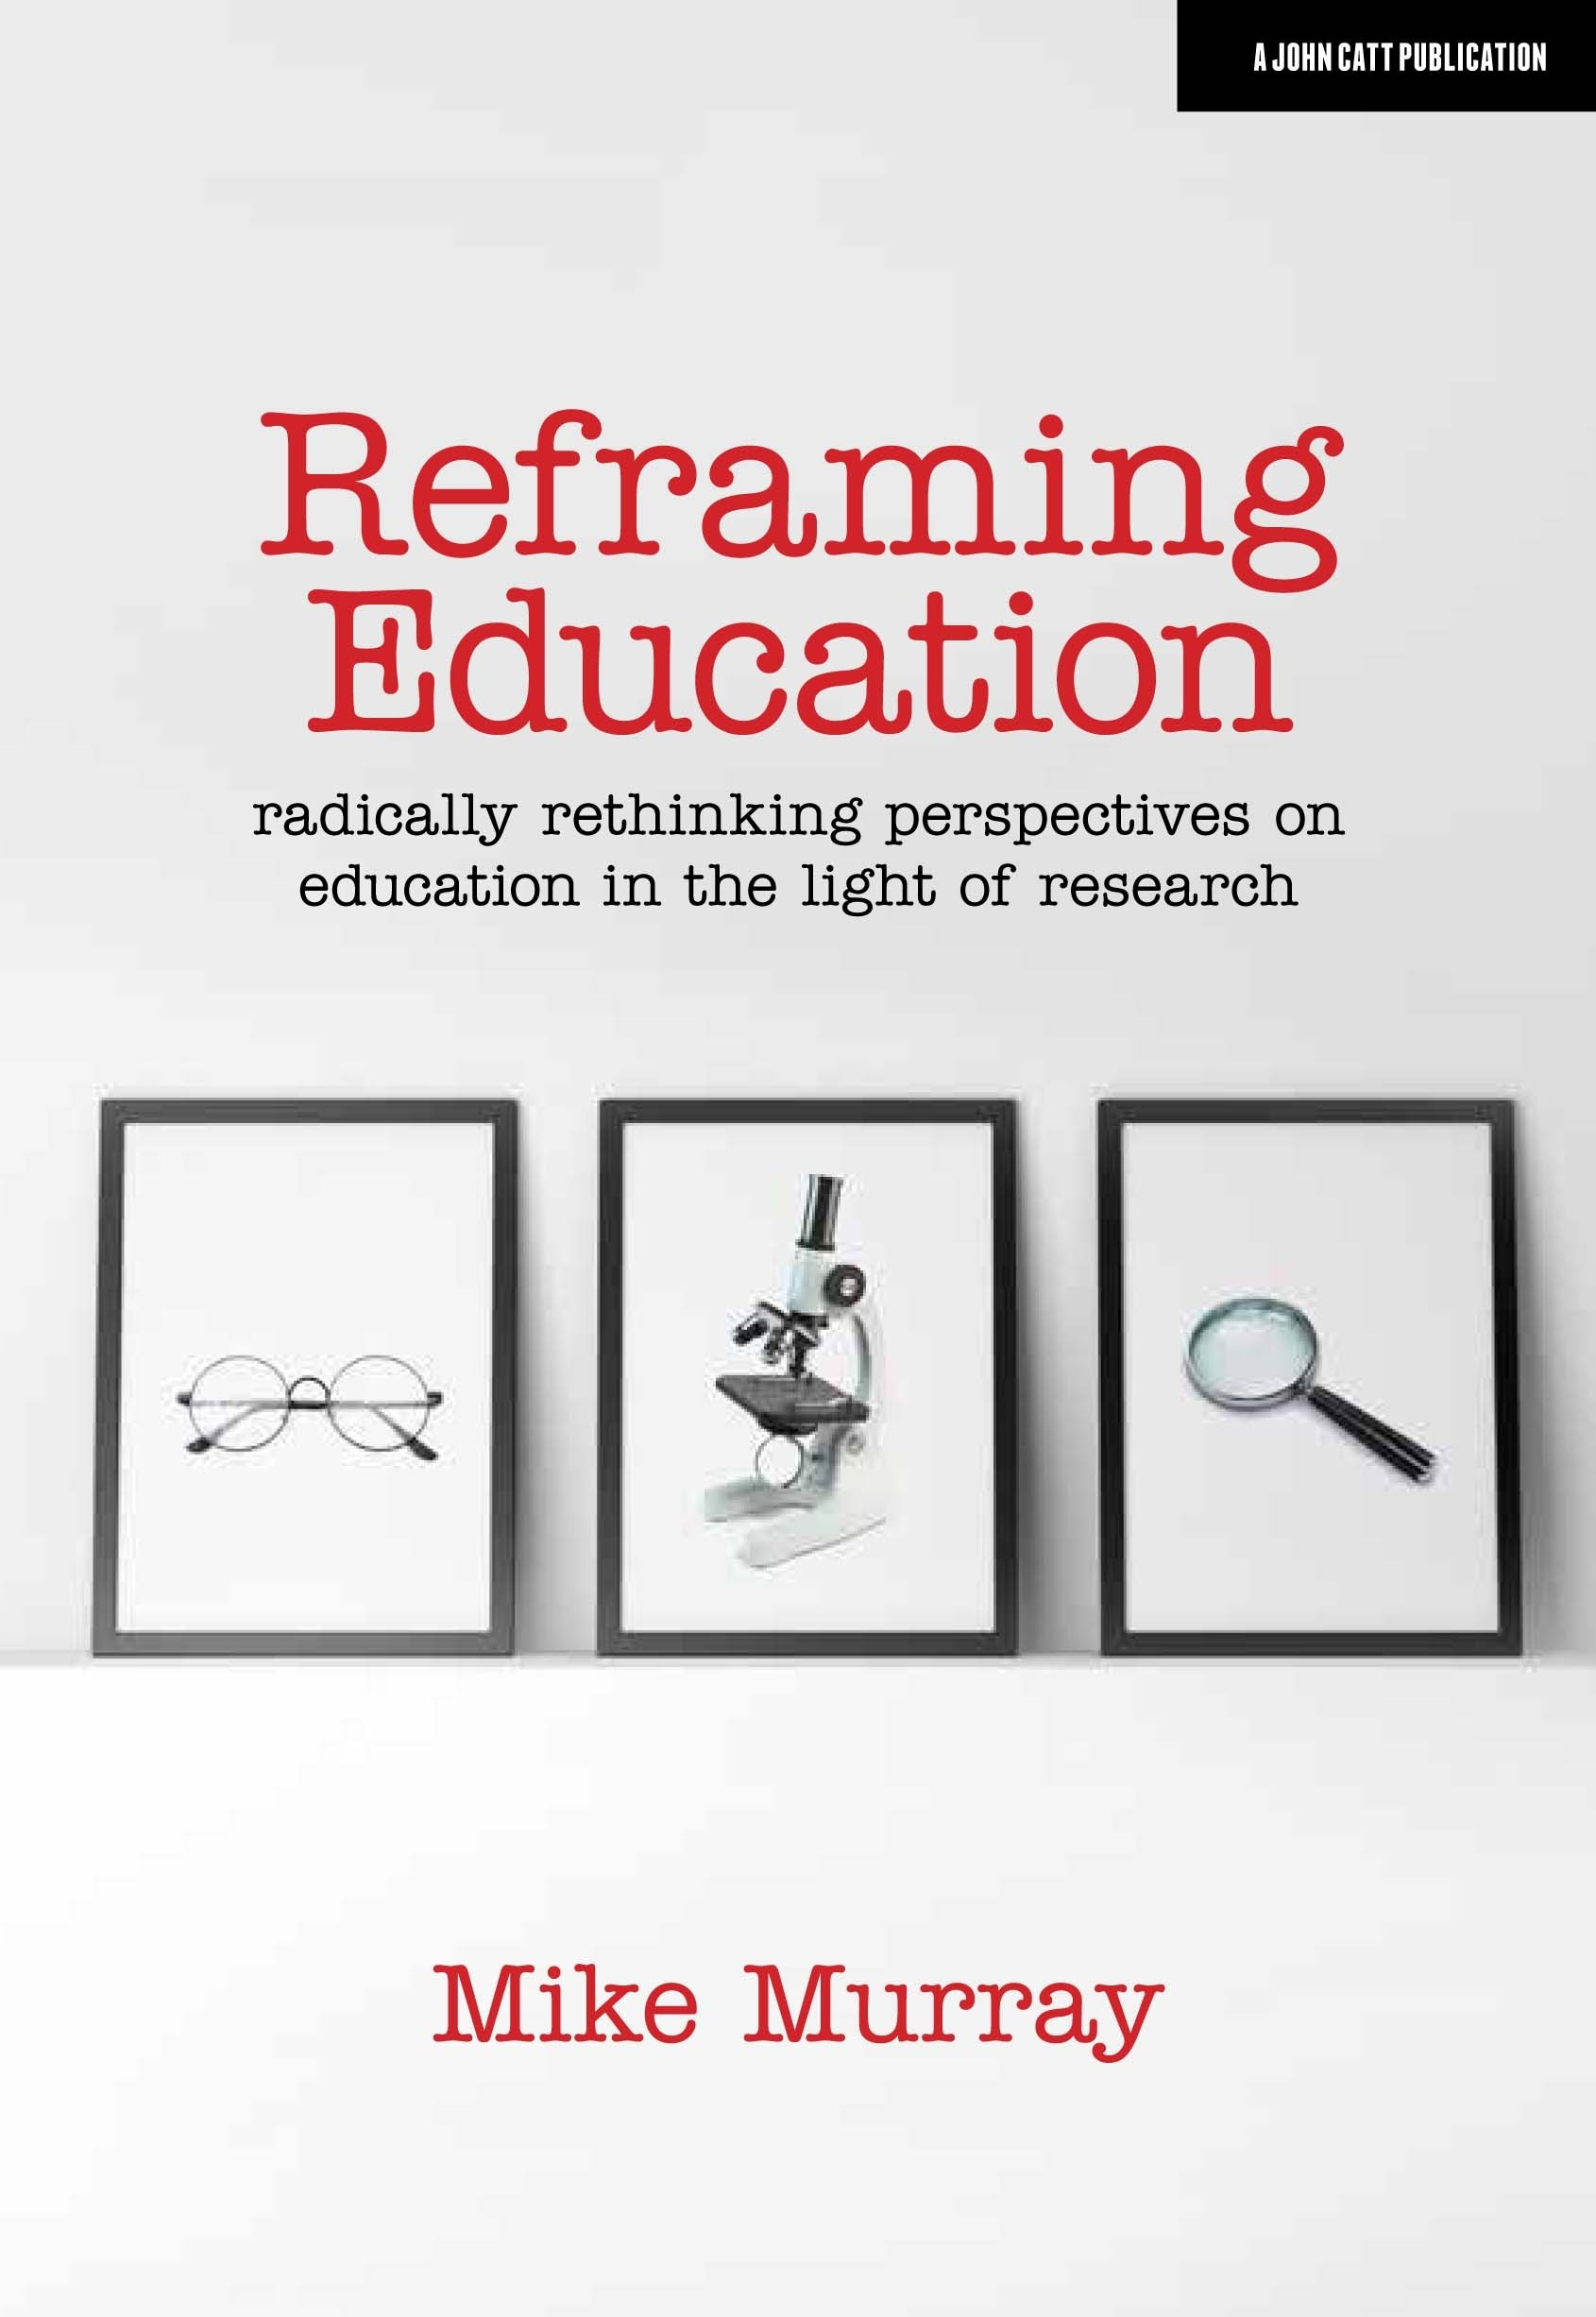 Reframing education: Radically rethinking perspectives on education in the light of research